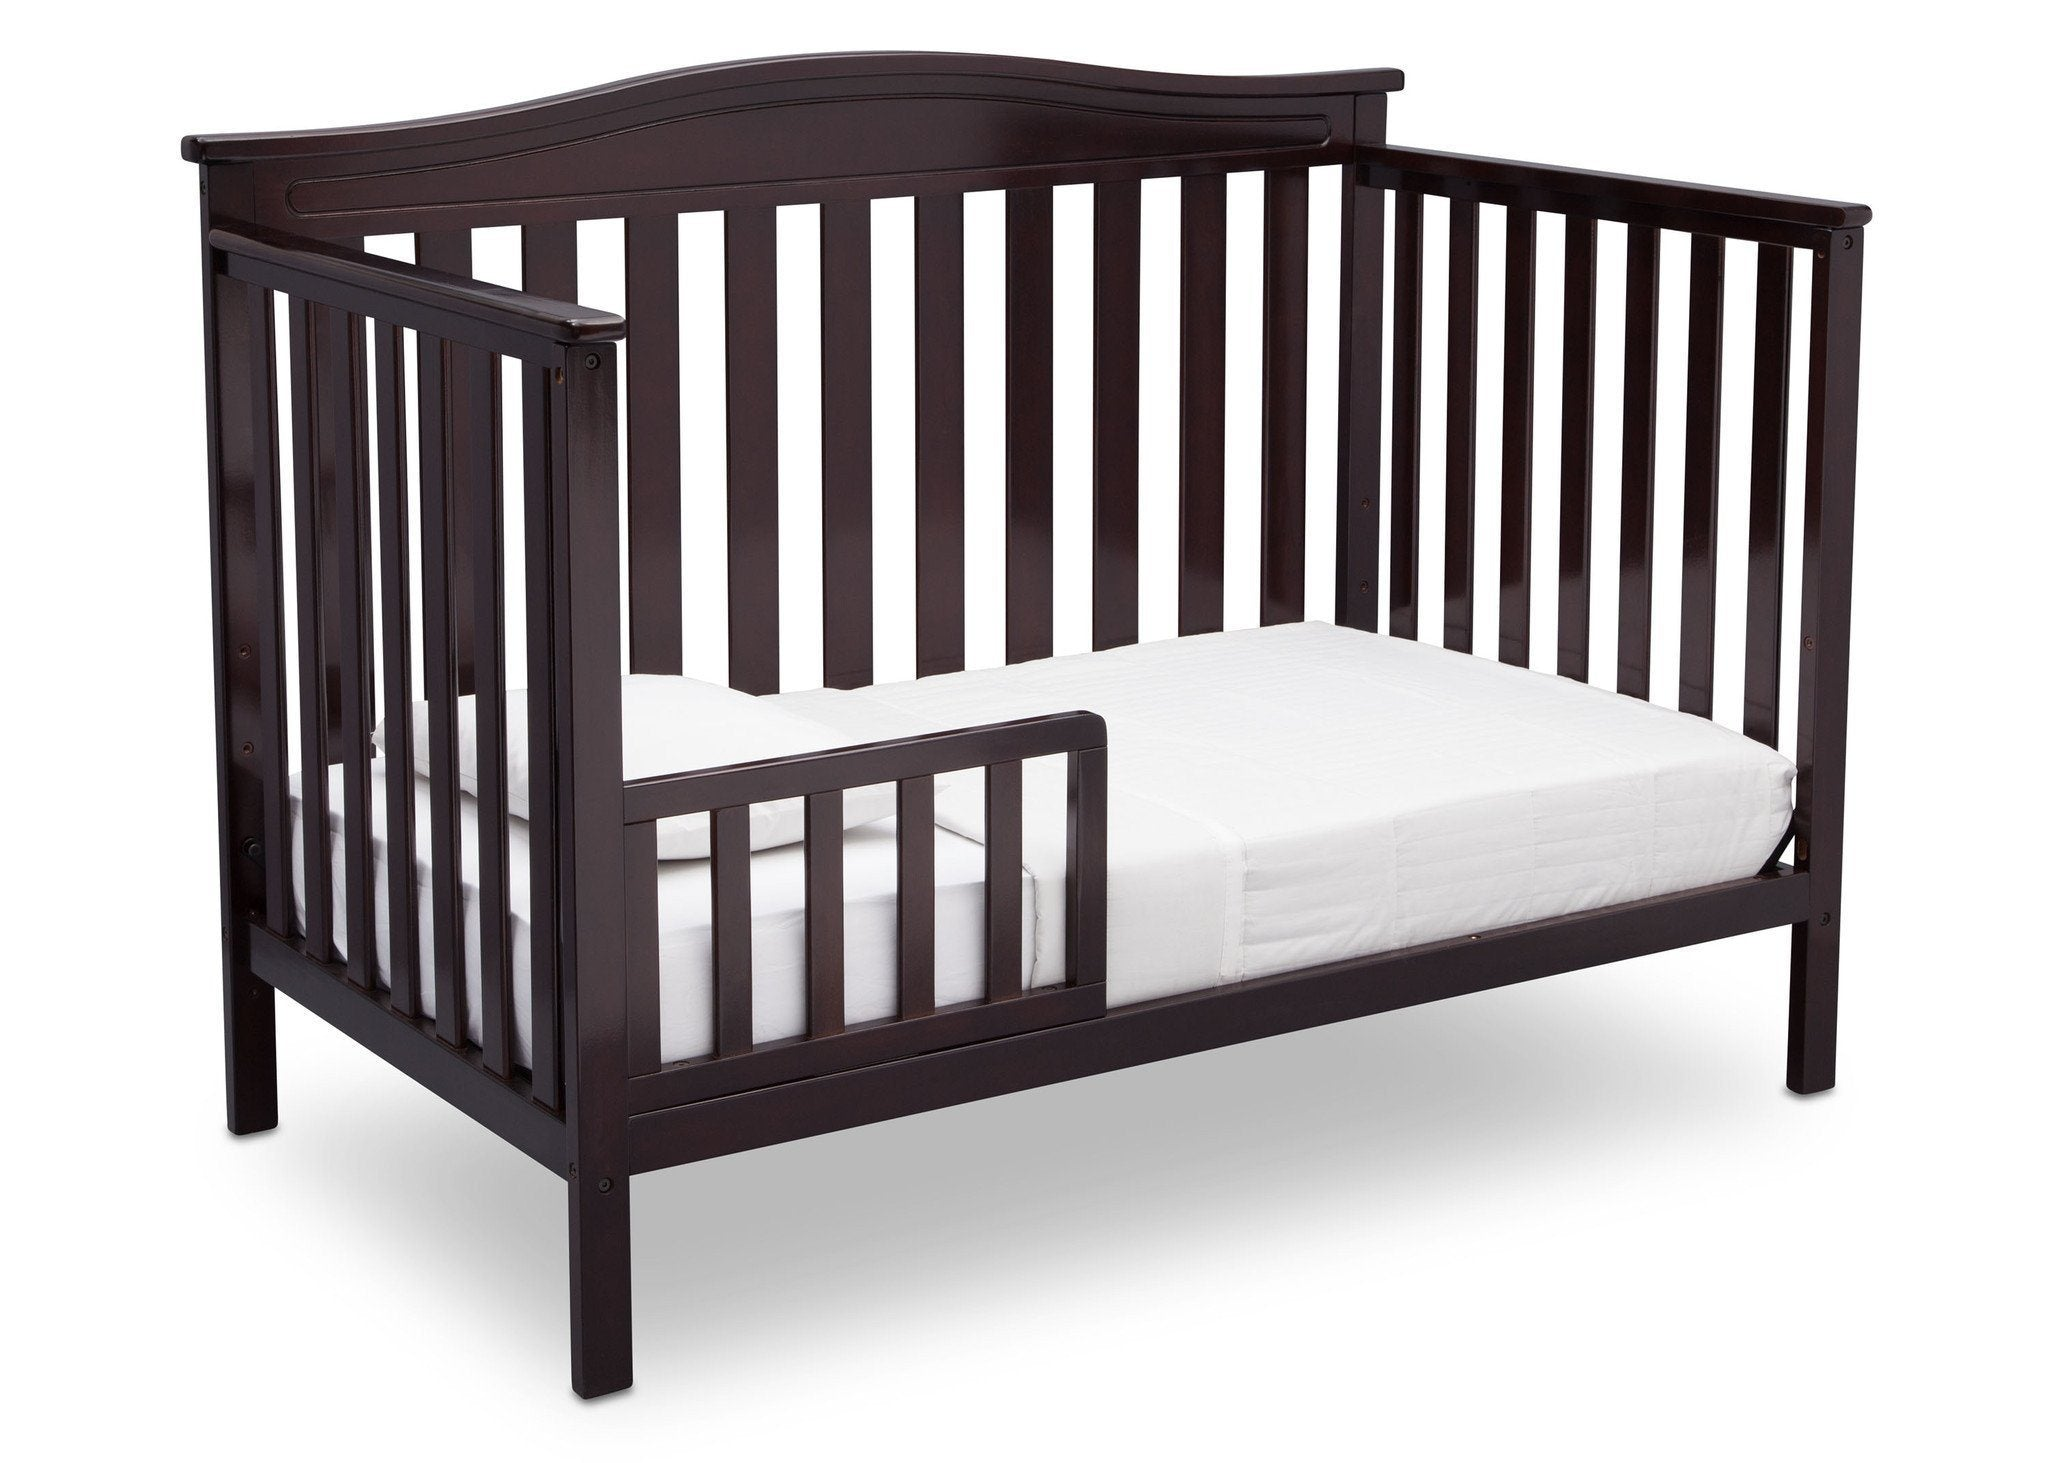 crib cando news kiddo candokiddo move my early kid or to can a i toddler from moving com cribs how big bed